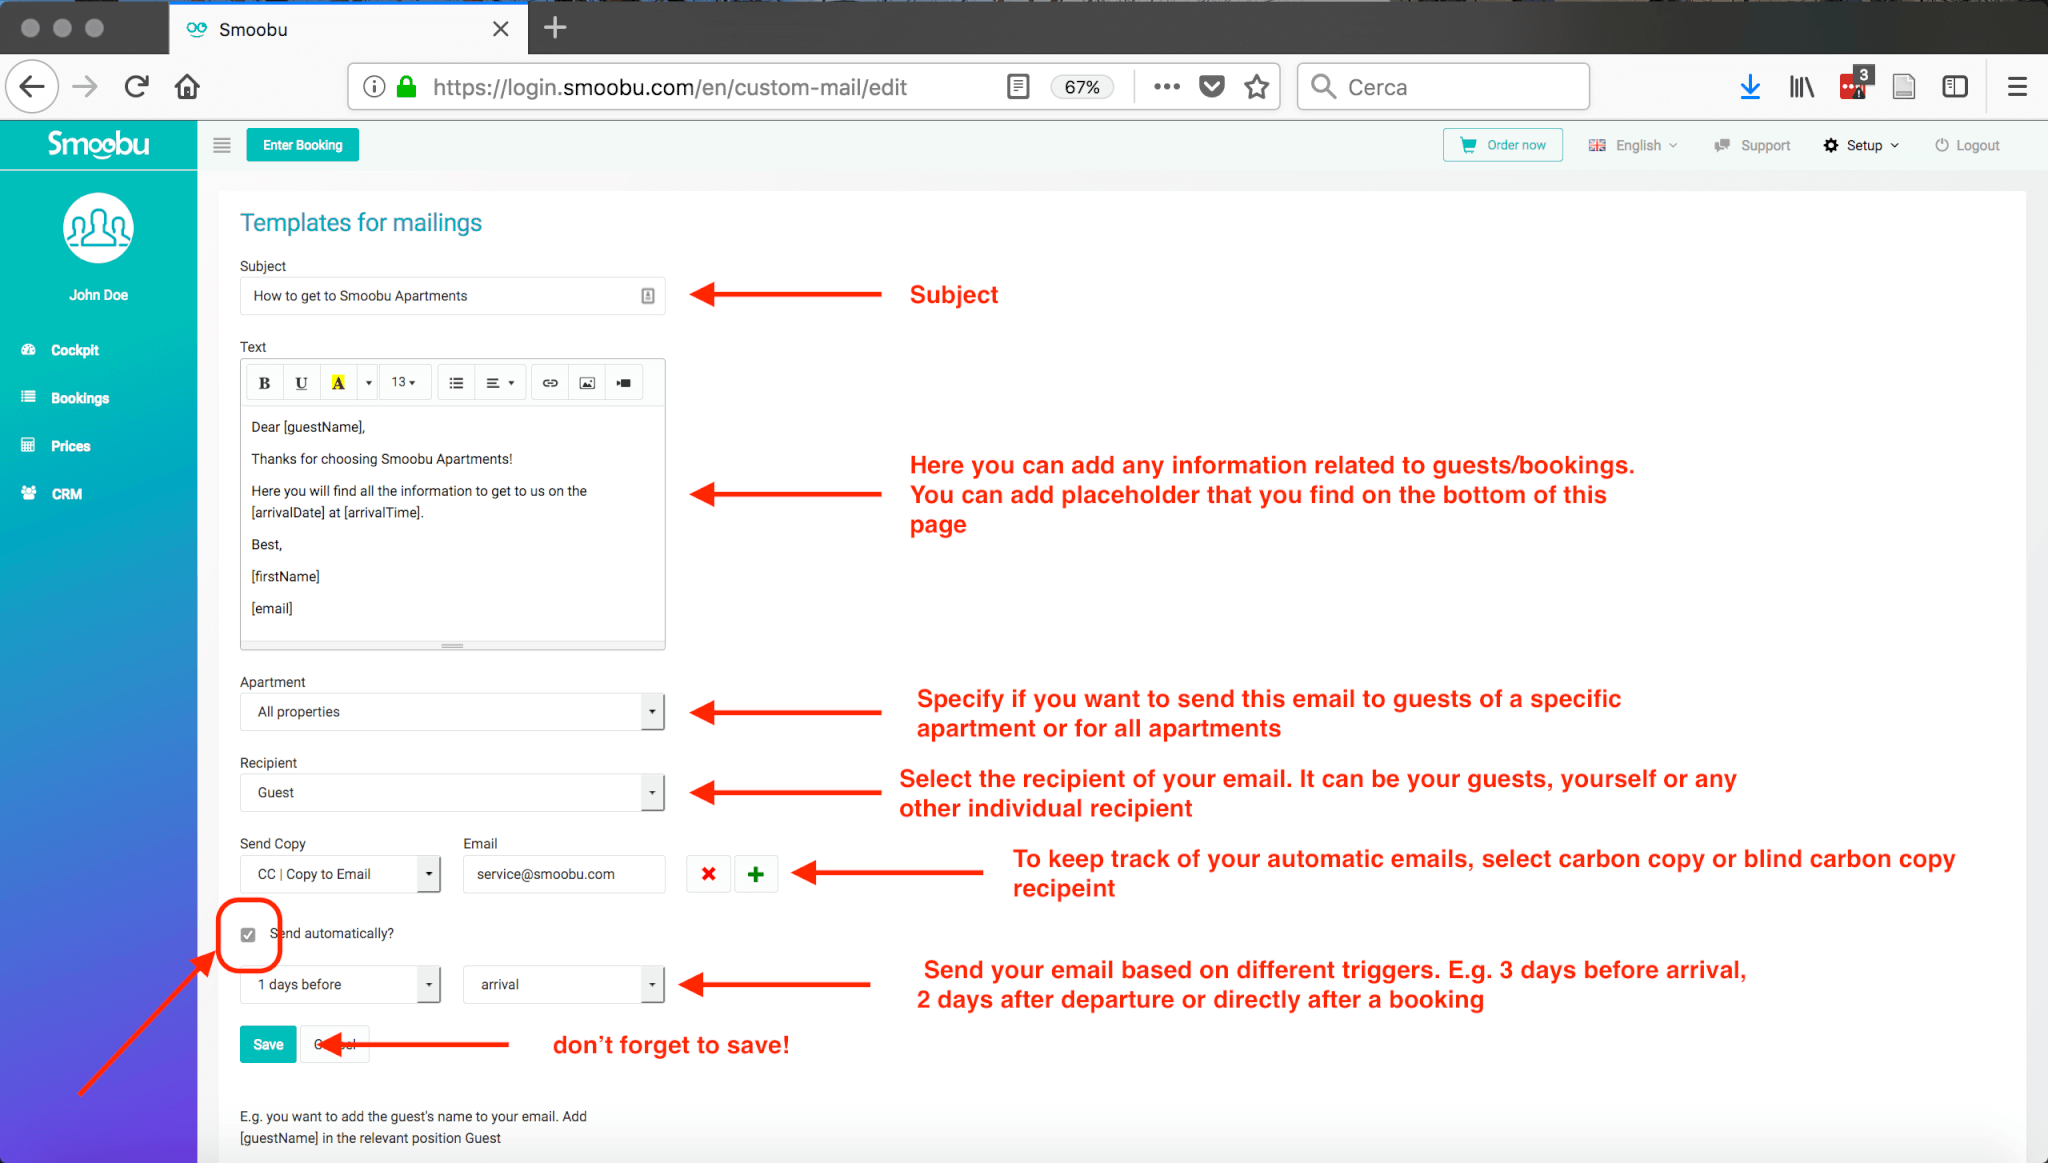 ᐅ USER GUIDE: how to send messages based on triggers such as booking, arrival or departure